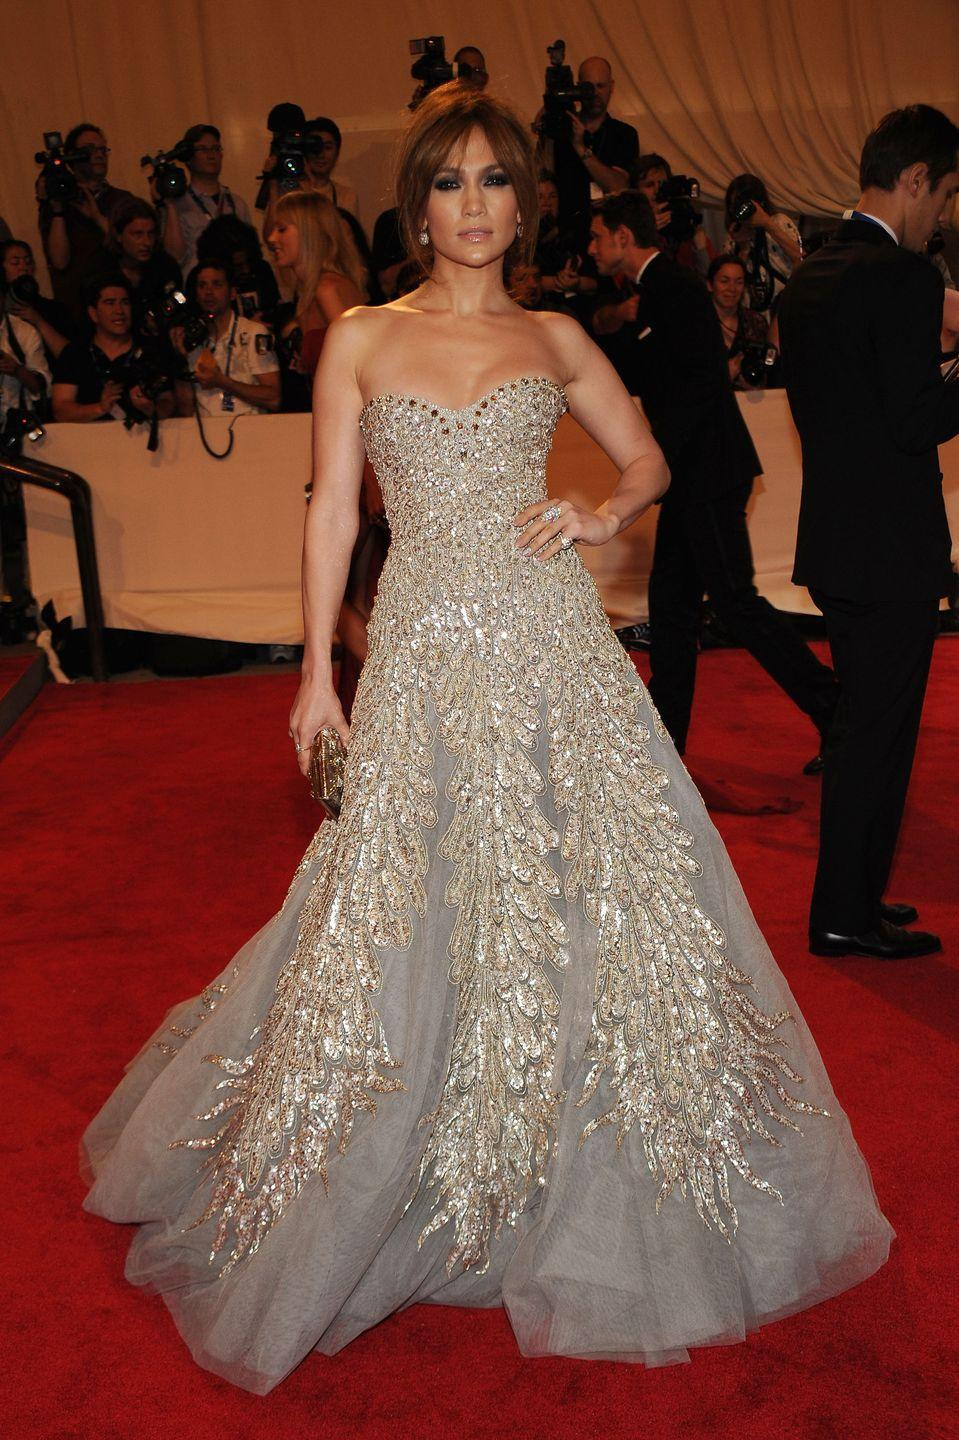 <p><strong>When: </strong>May 2010</p><p><strong>Where: </strong>The Met Gala</p><p><strong>Wearing: </strong>Zuhair Murad</p>